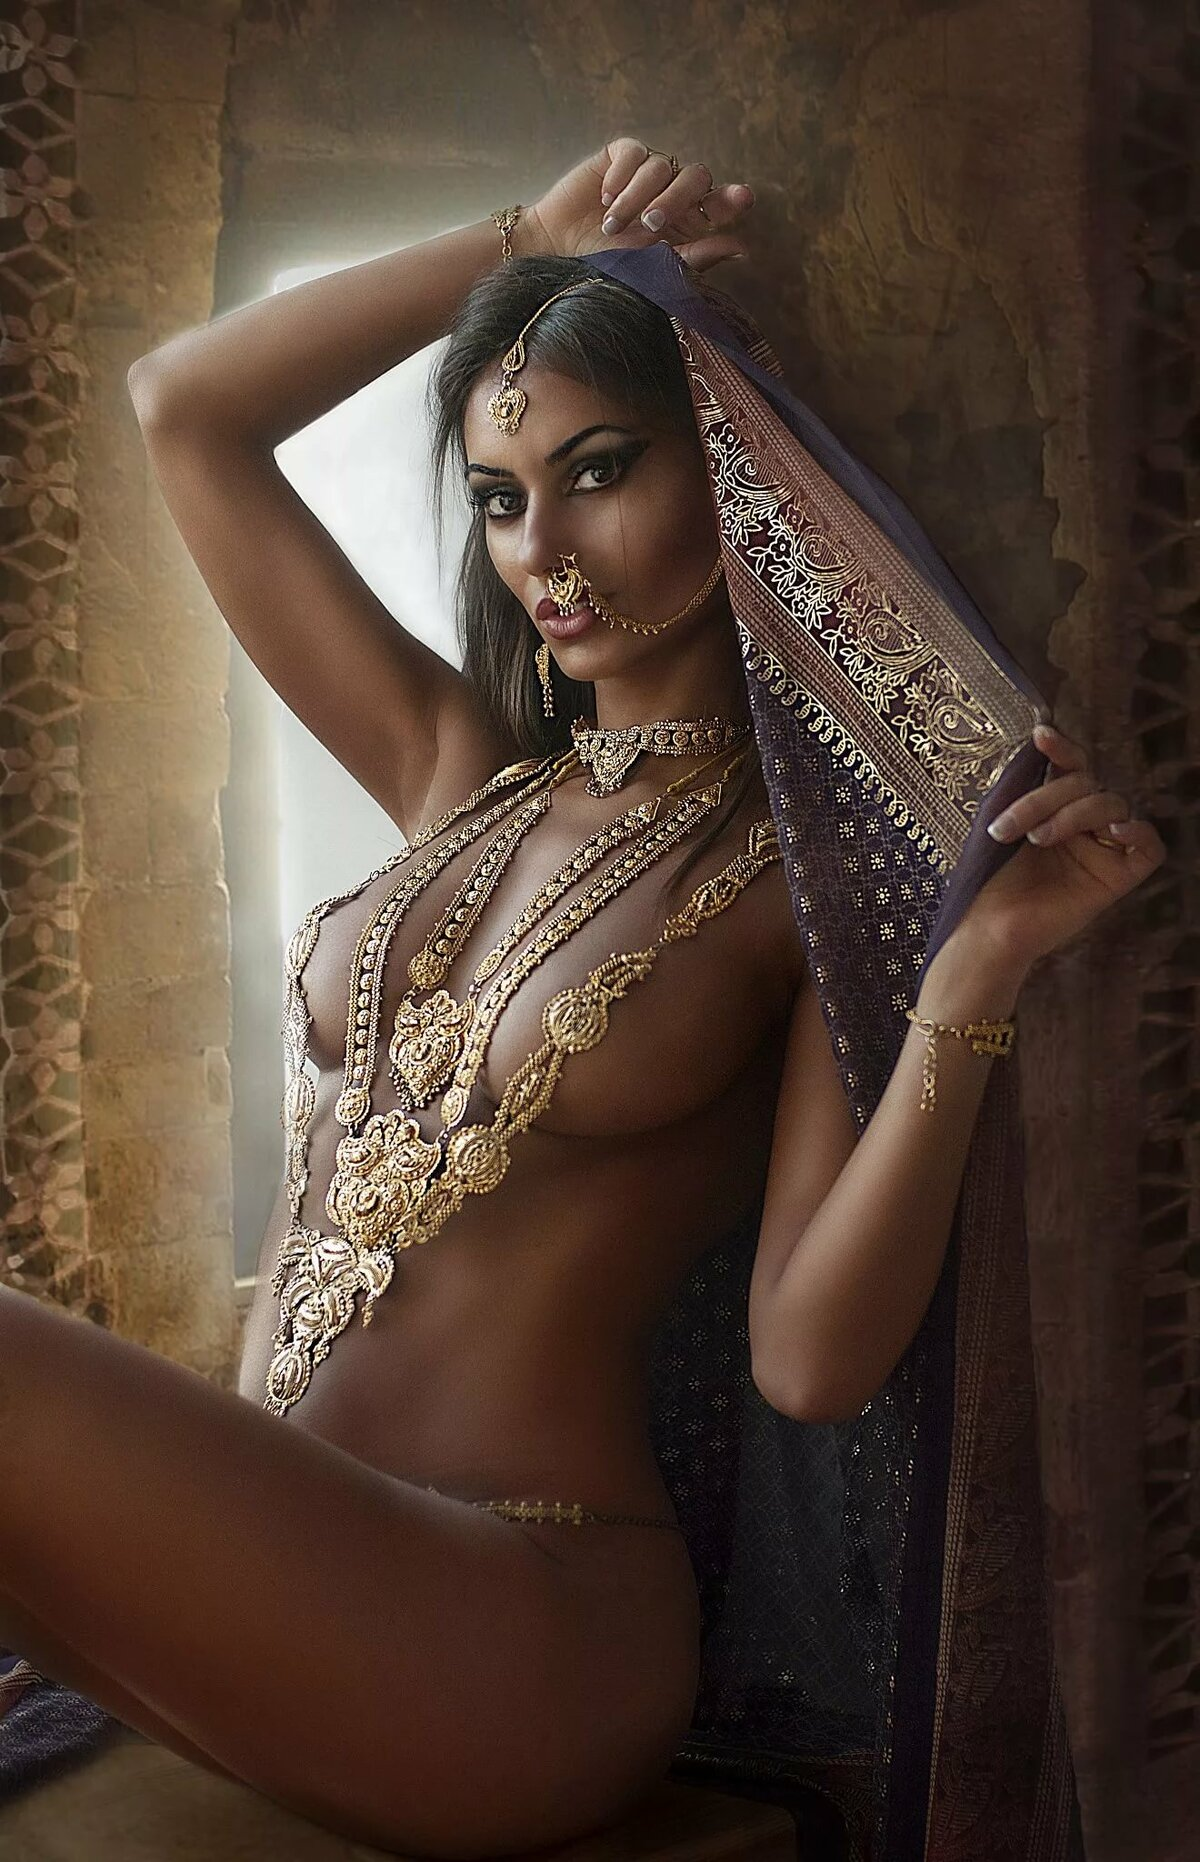 sexy-naked-nude-sarees-girls-slut